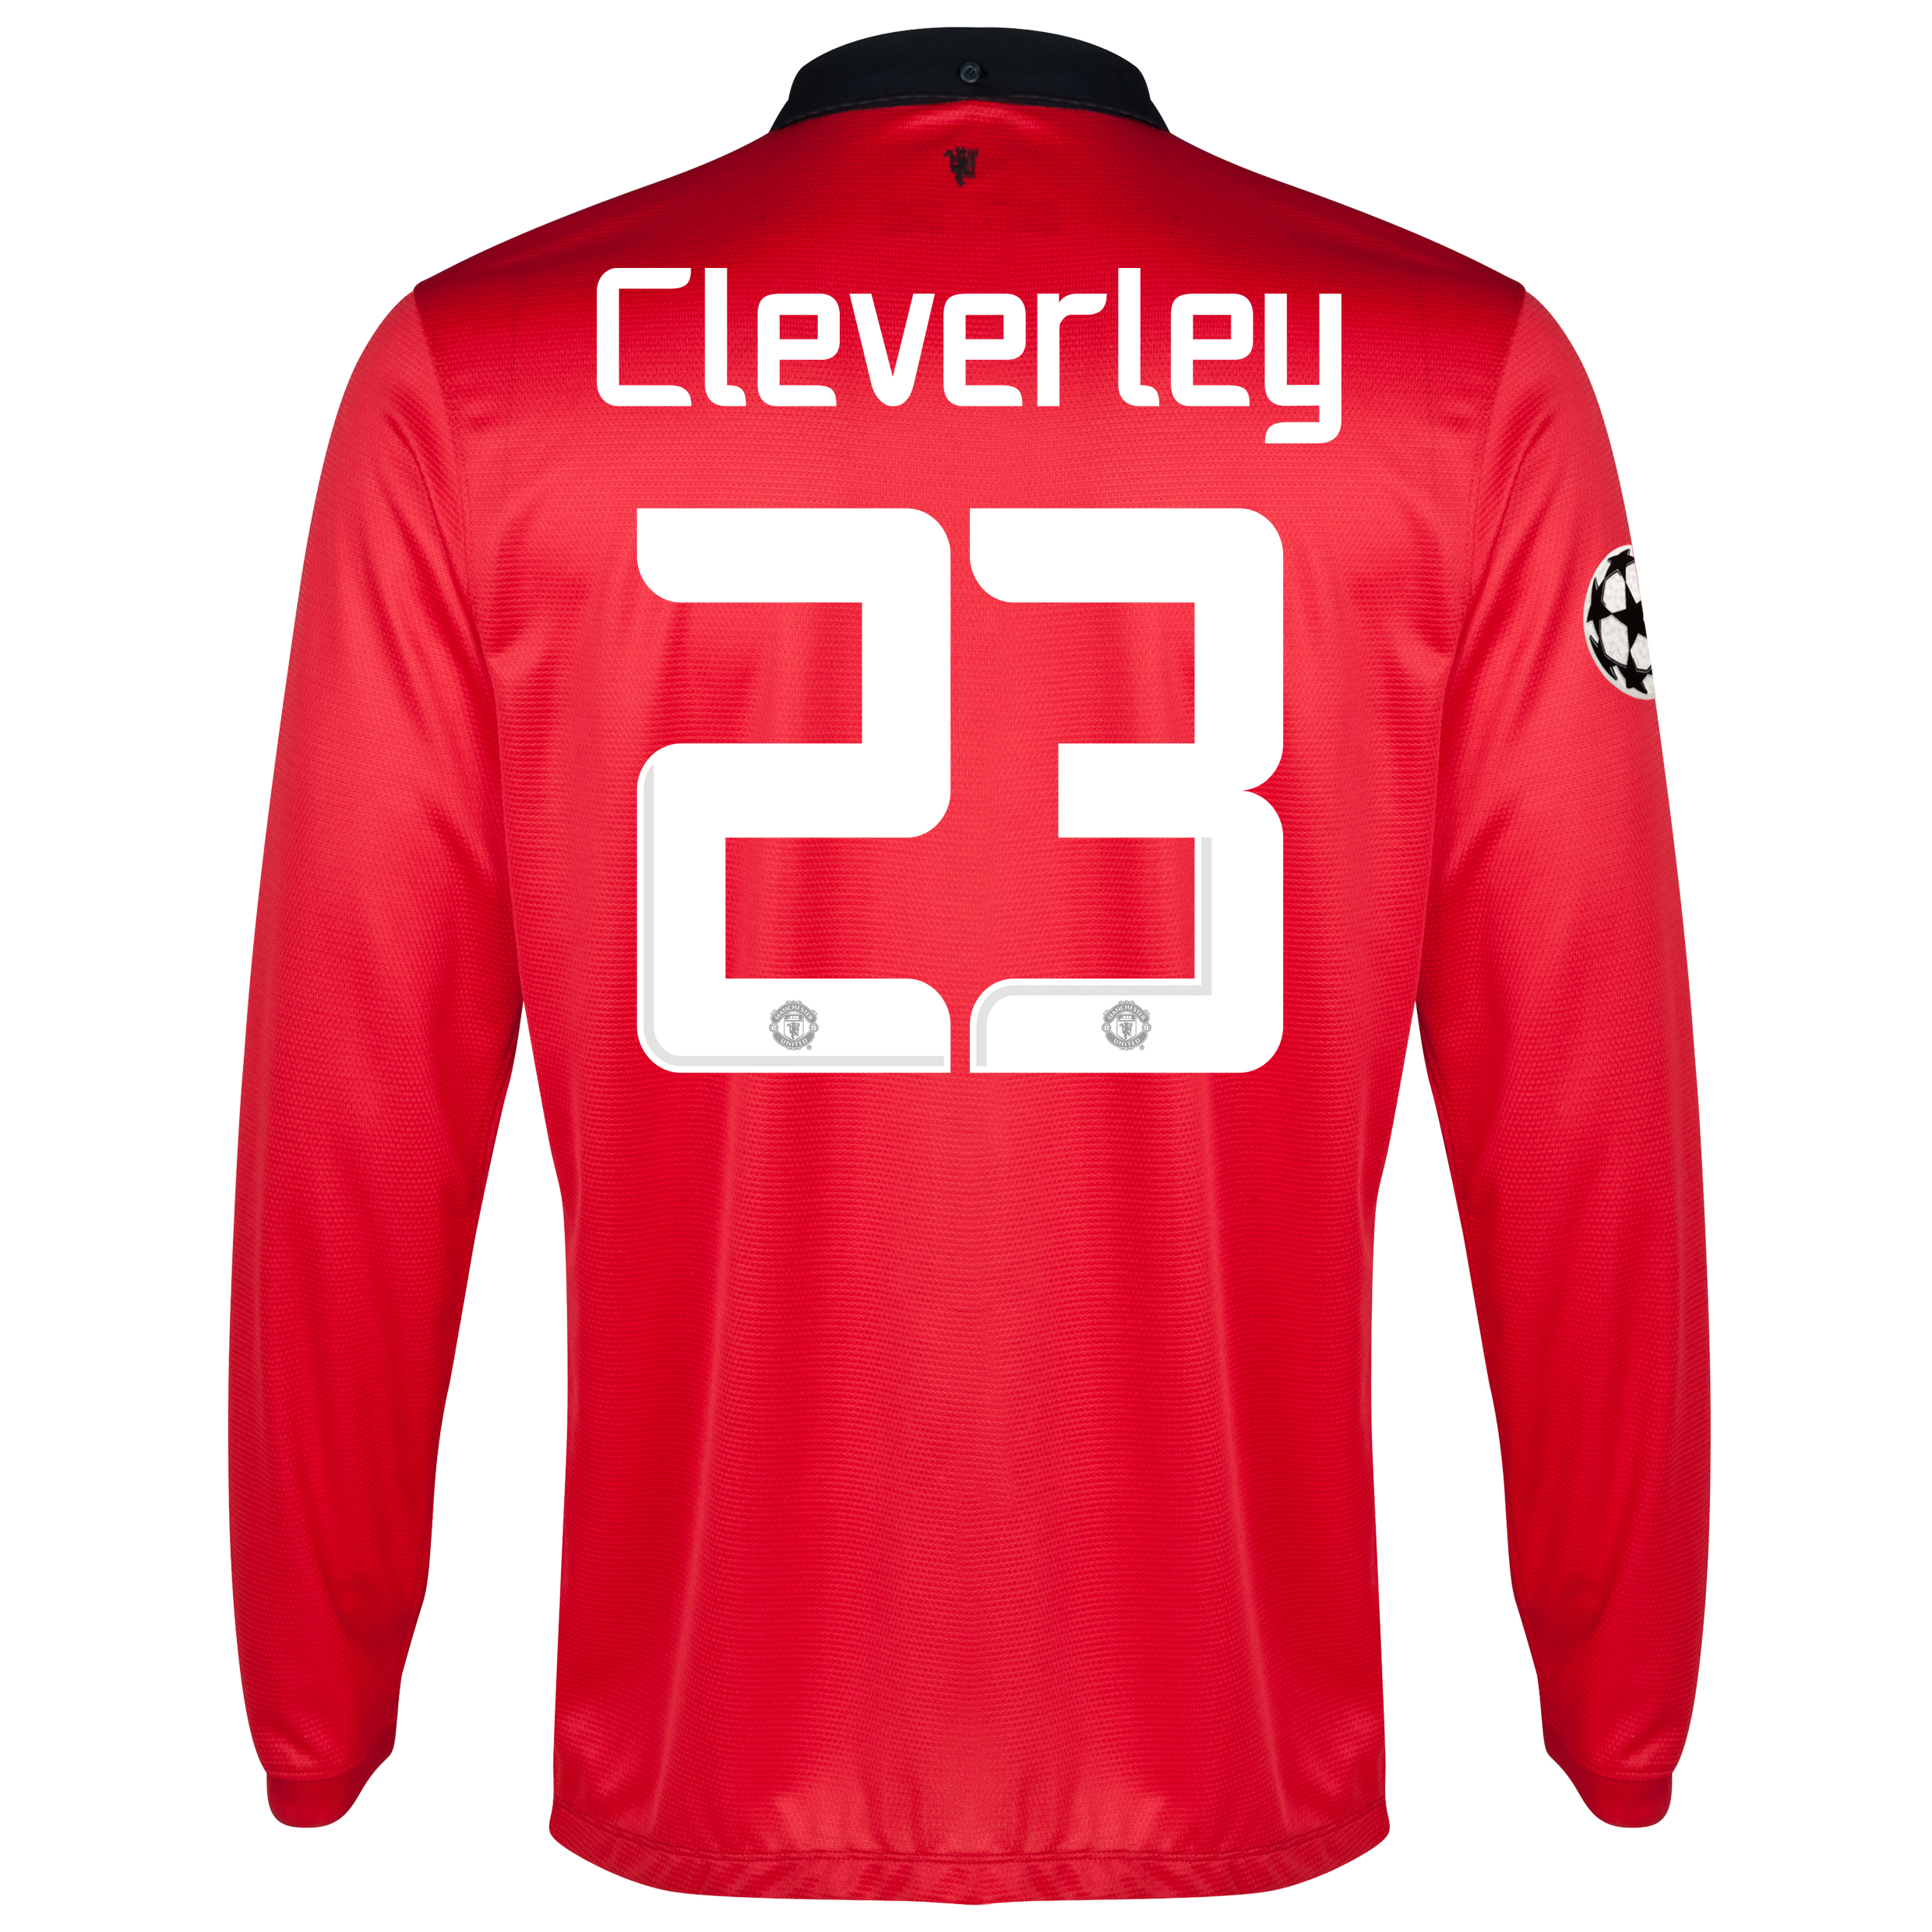 Manchester United UEFA Champions League Home Shirt 2013/14 - Long Sleeved - Kids with Cleverley 23 printing